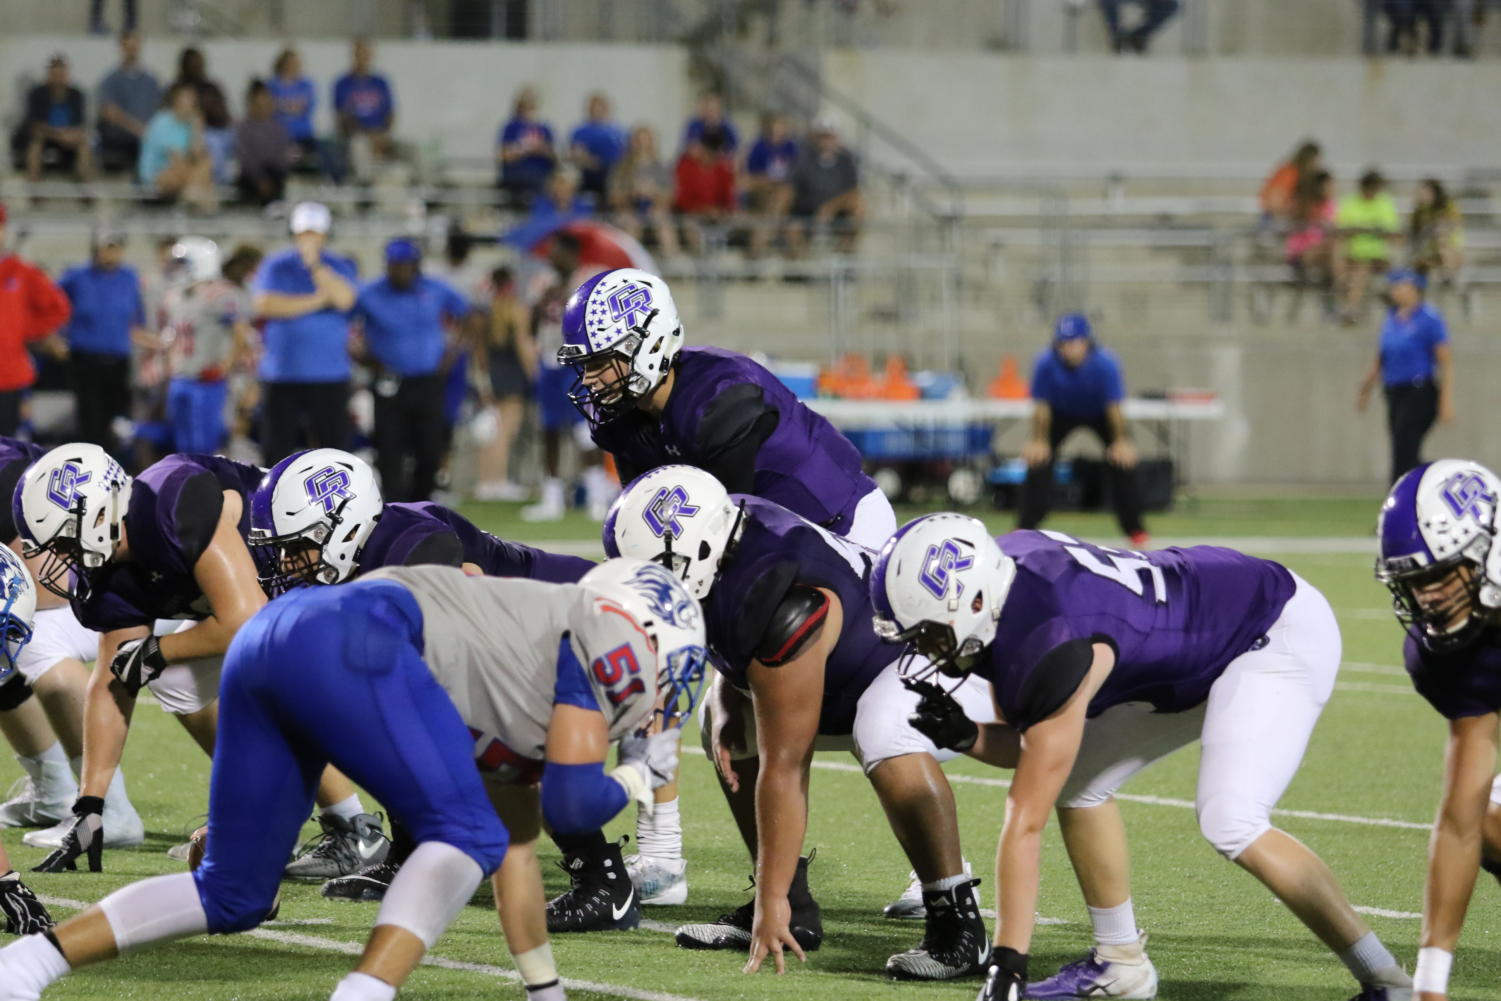 The Cedar Ridge offense lines up against the Leander Lions on September 21st, 2018. The Raiders won 63-21.